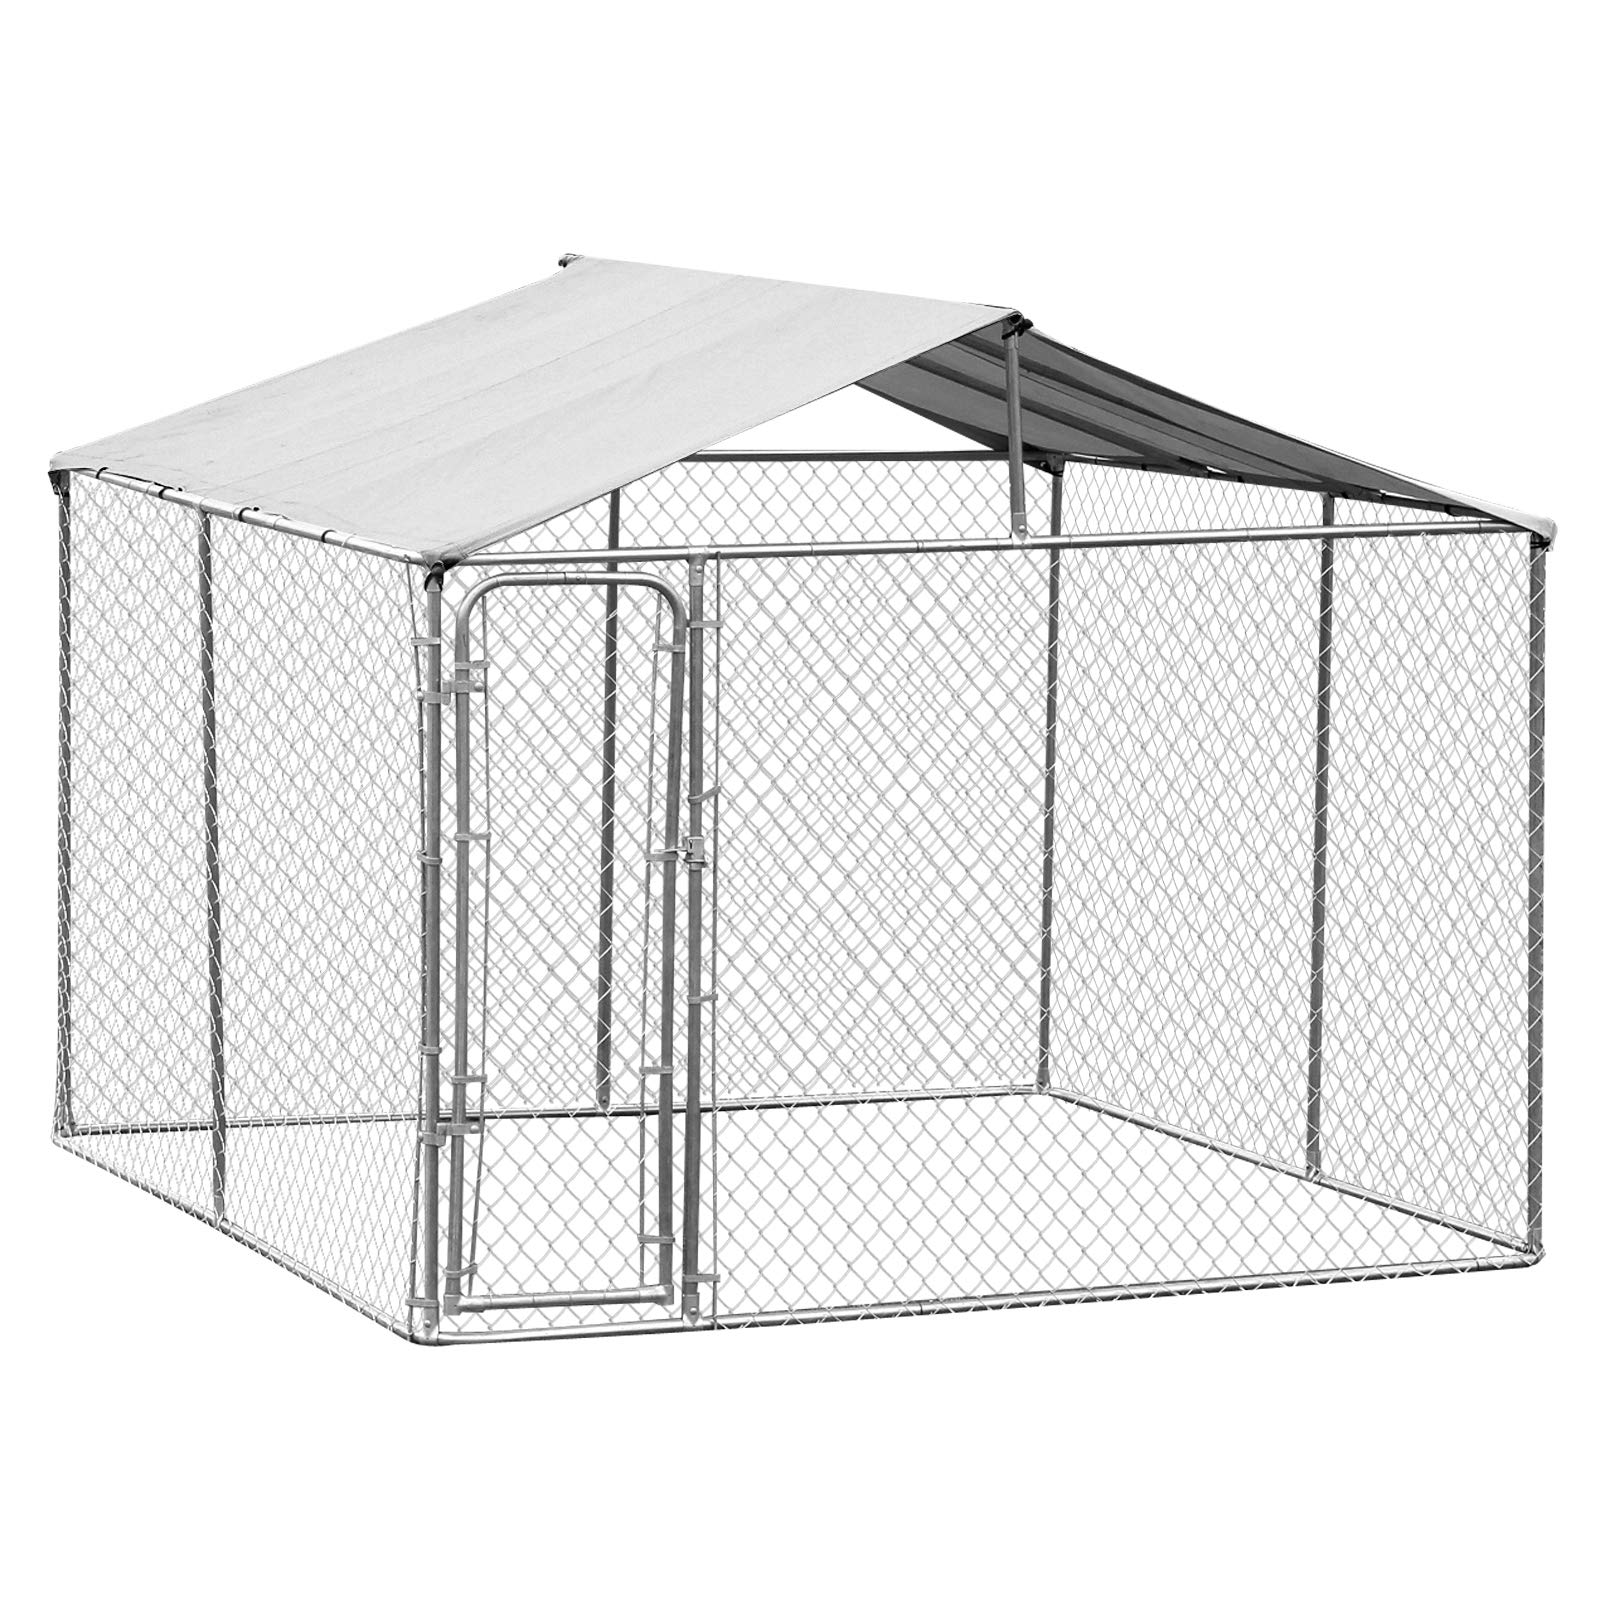 PawHut 10' x 10' x 6' Outdoor Chain Link Box Kennel Dog House with Cover - Silver by PawHut